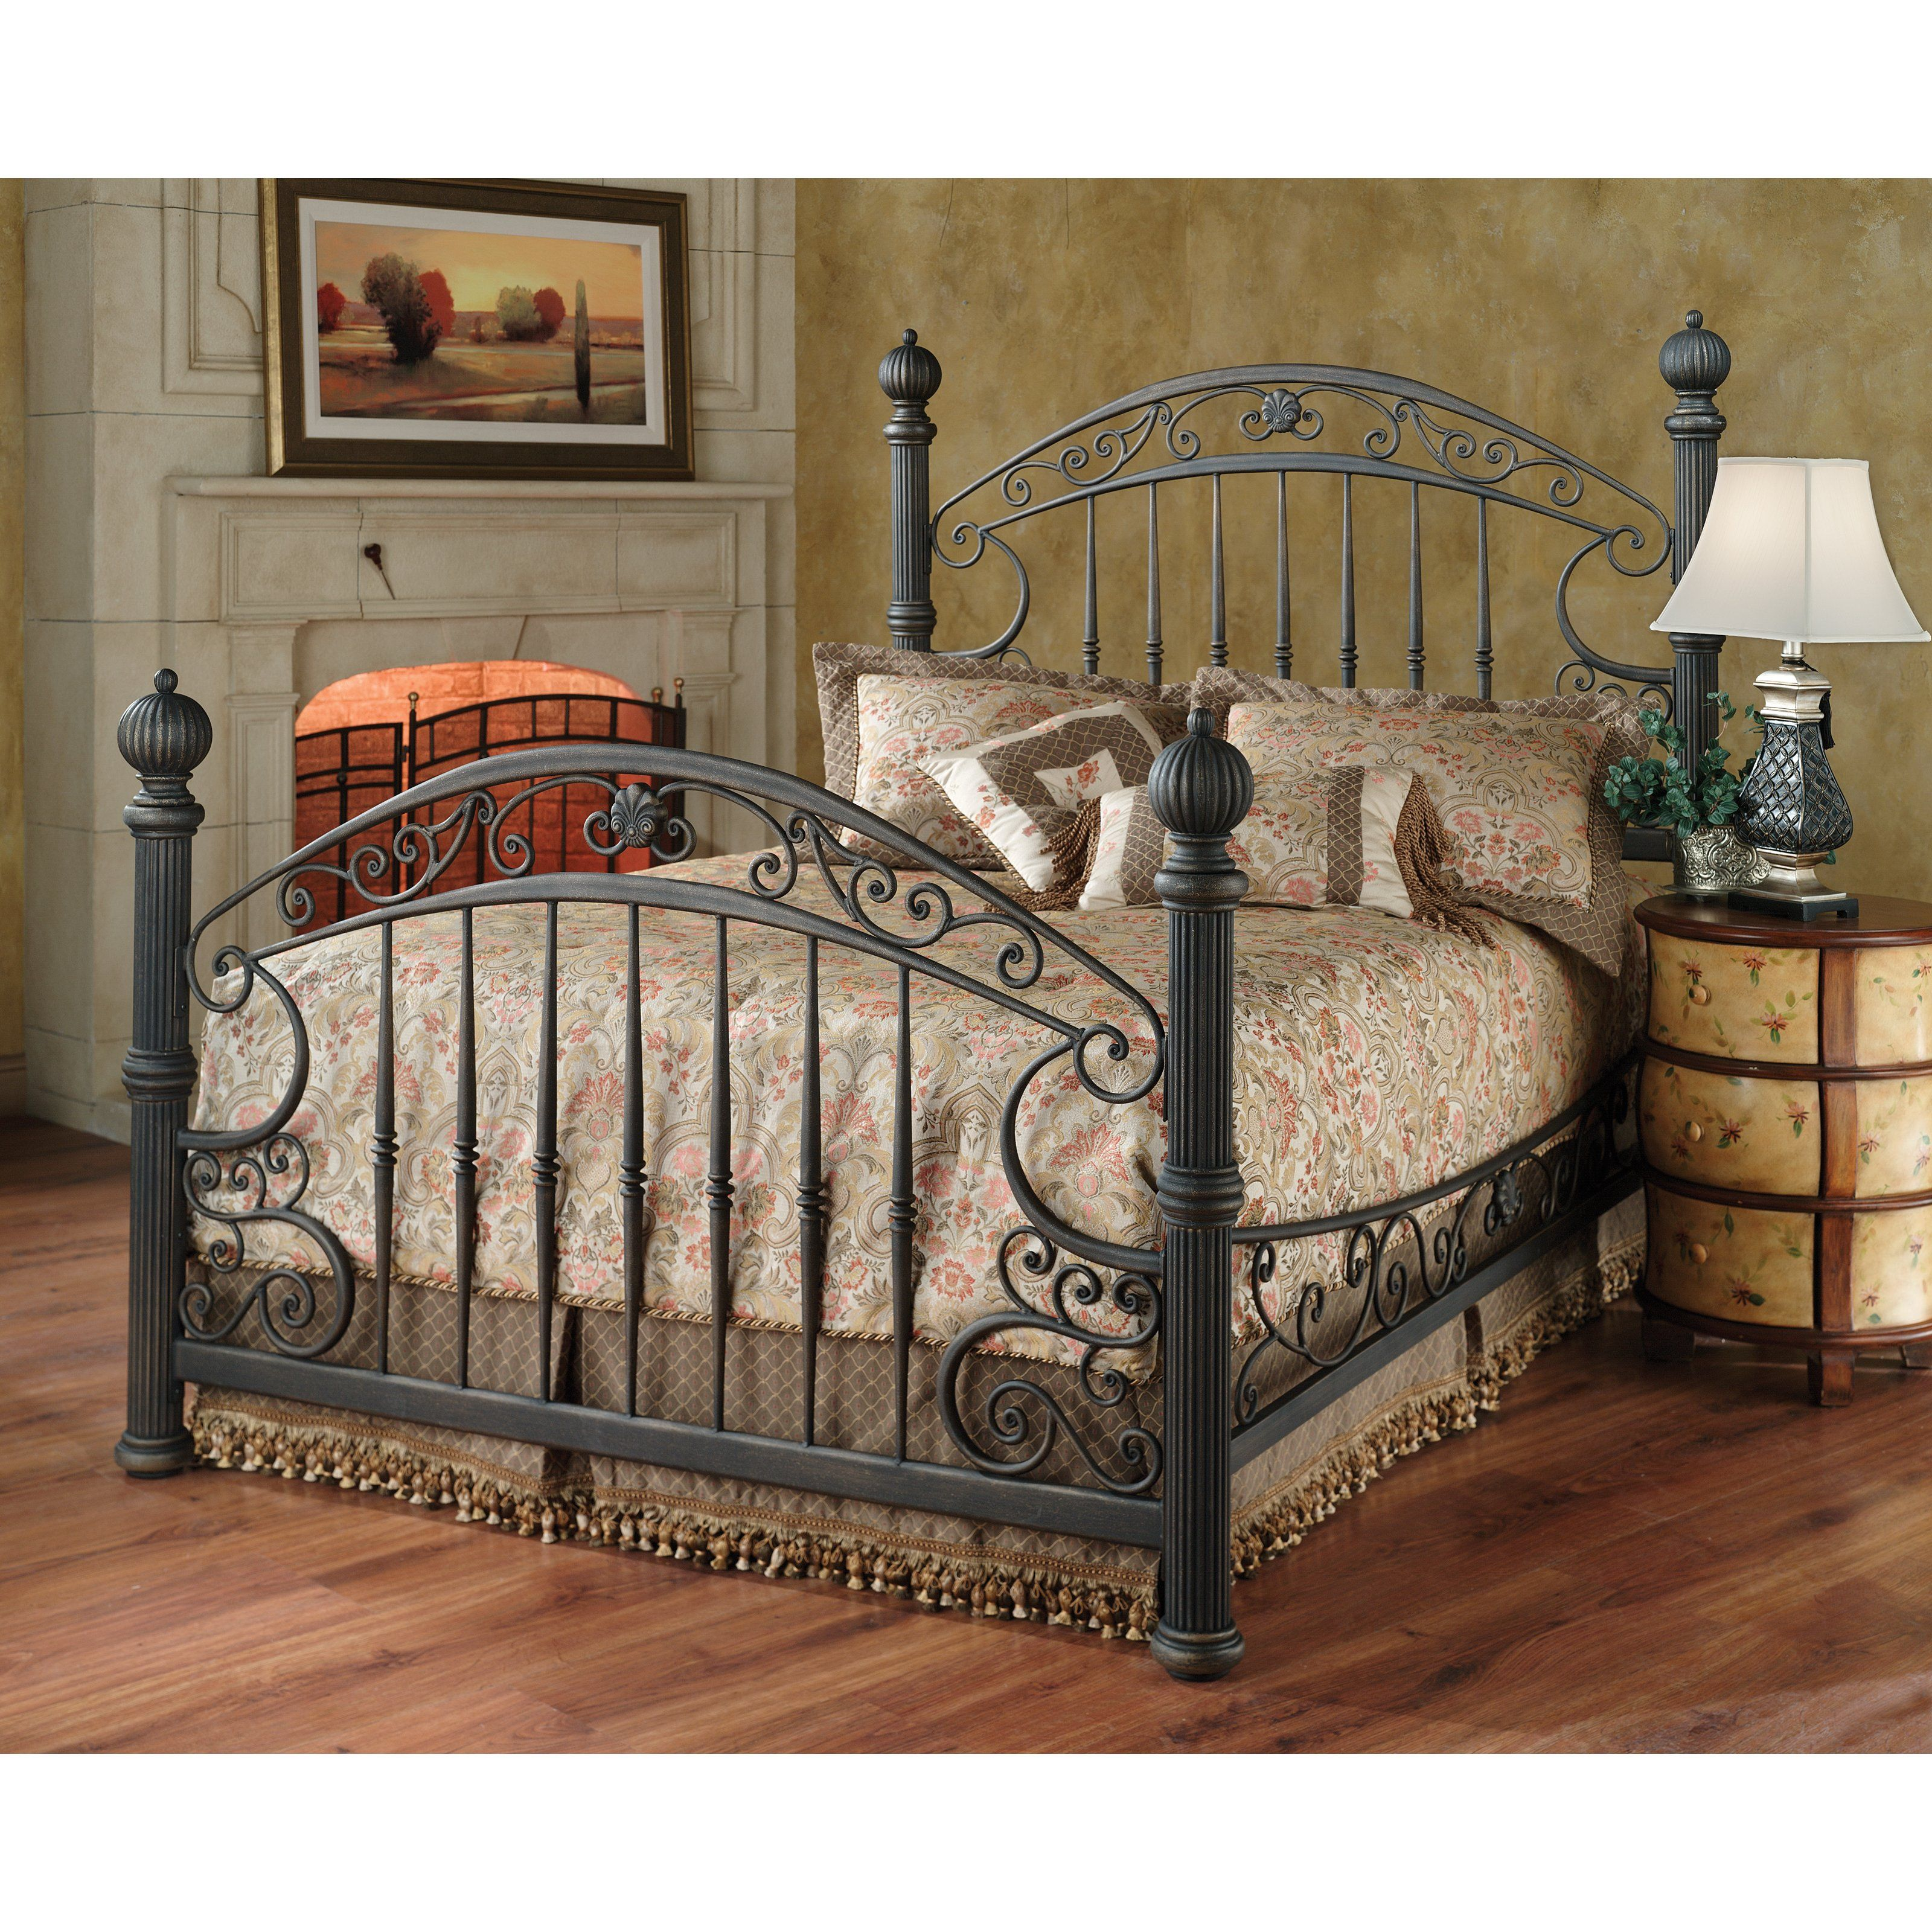 Hillsdale Chesapeake Bed - The Hillsdale Chesapeake Poster Bed is an  experiment in paradoxical design, as heavy wrought iron twists into a soft,  ...